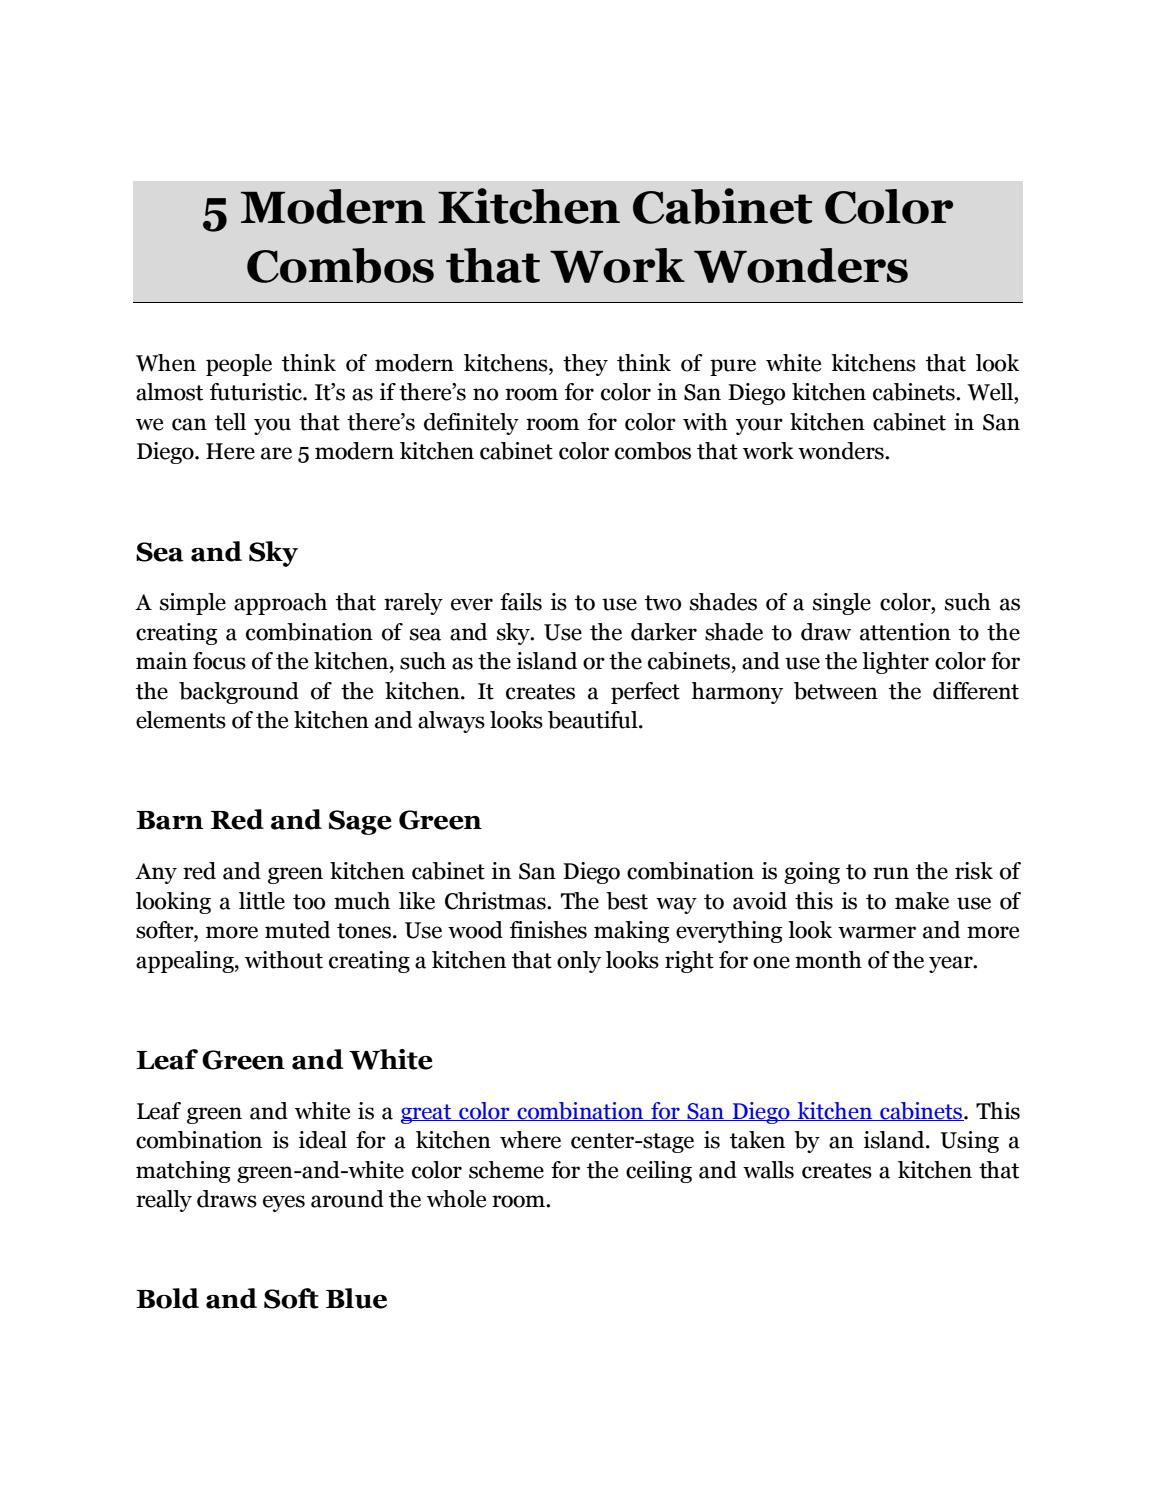 Modern Kitchen Cabinet Color Combos That Work Wonders By Anthonyfisher593 Issuu